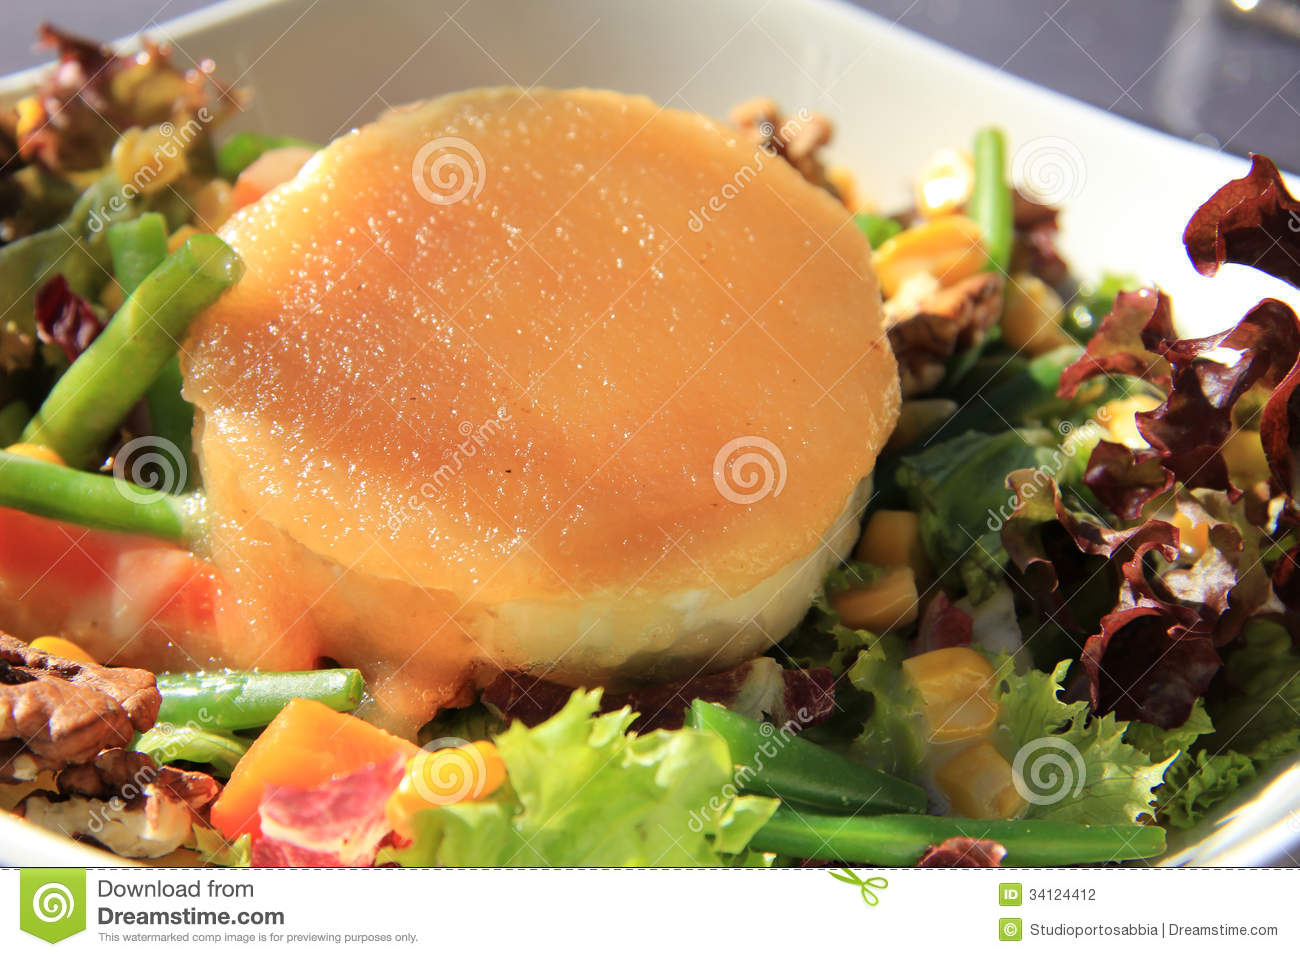 Goat Cheese Salad Stock Photography - Image: 34124412